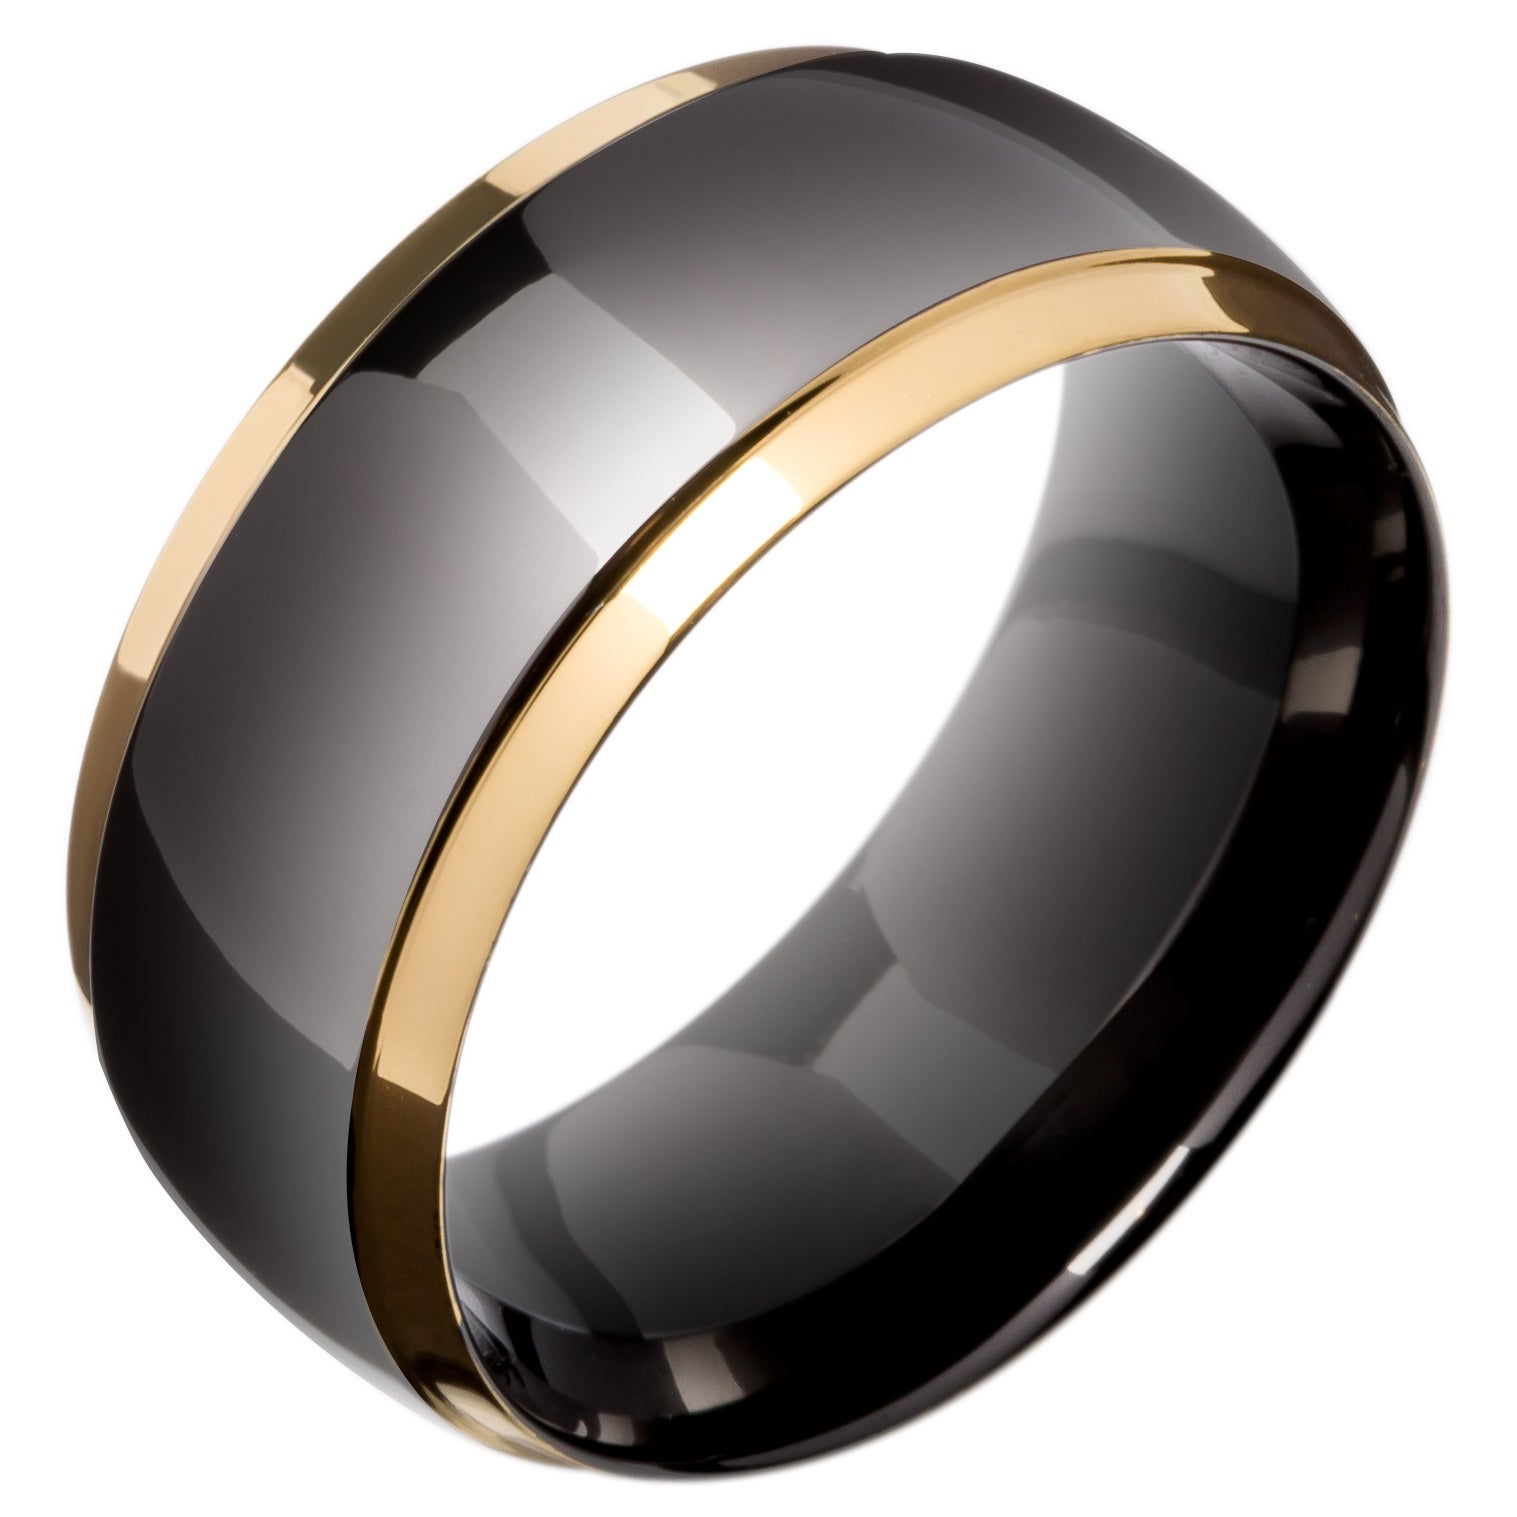 band tungsten black edge dsc wedding brushed men fit ring products comfort hudson for jewelry rings kim polished women beveled